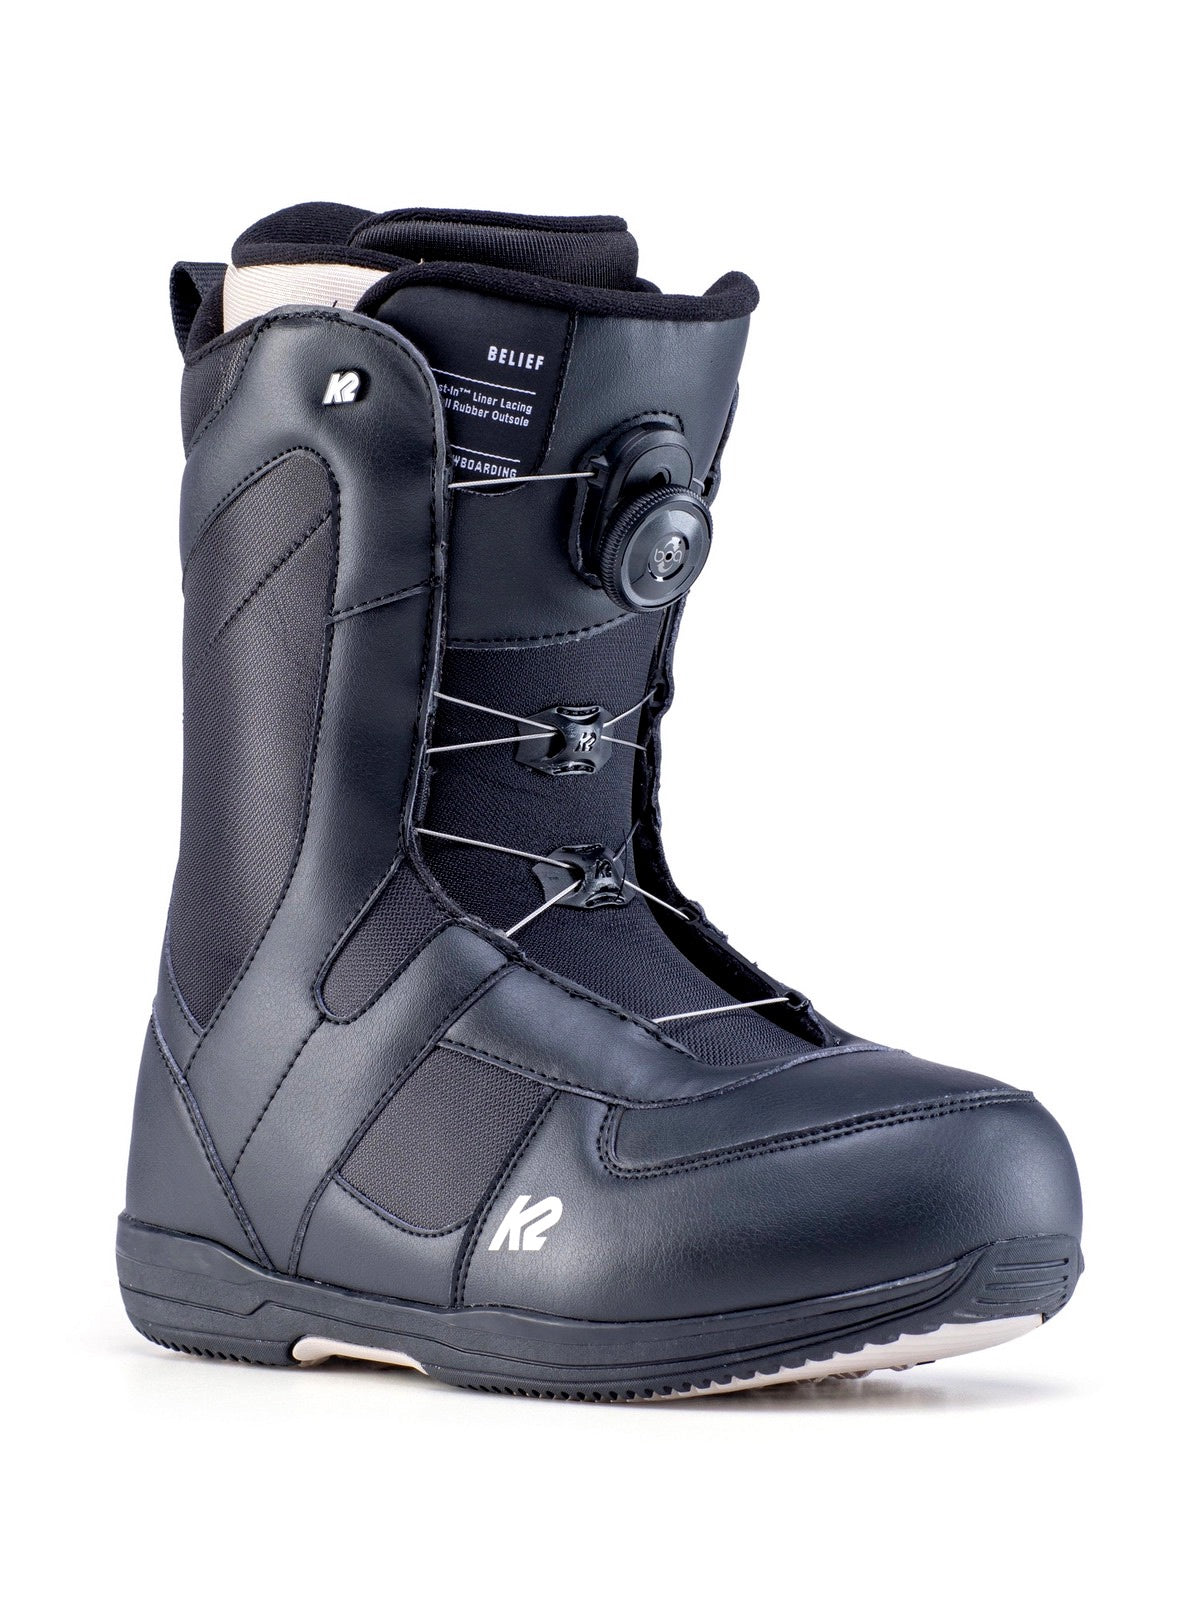 K2 2020 Belief Snowboard Boot